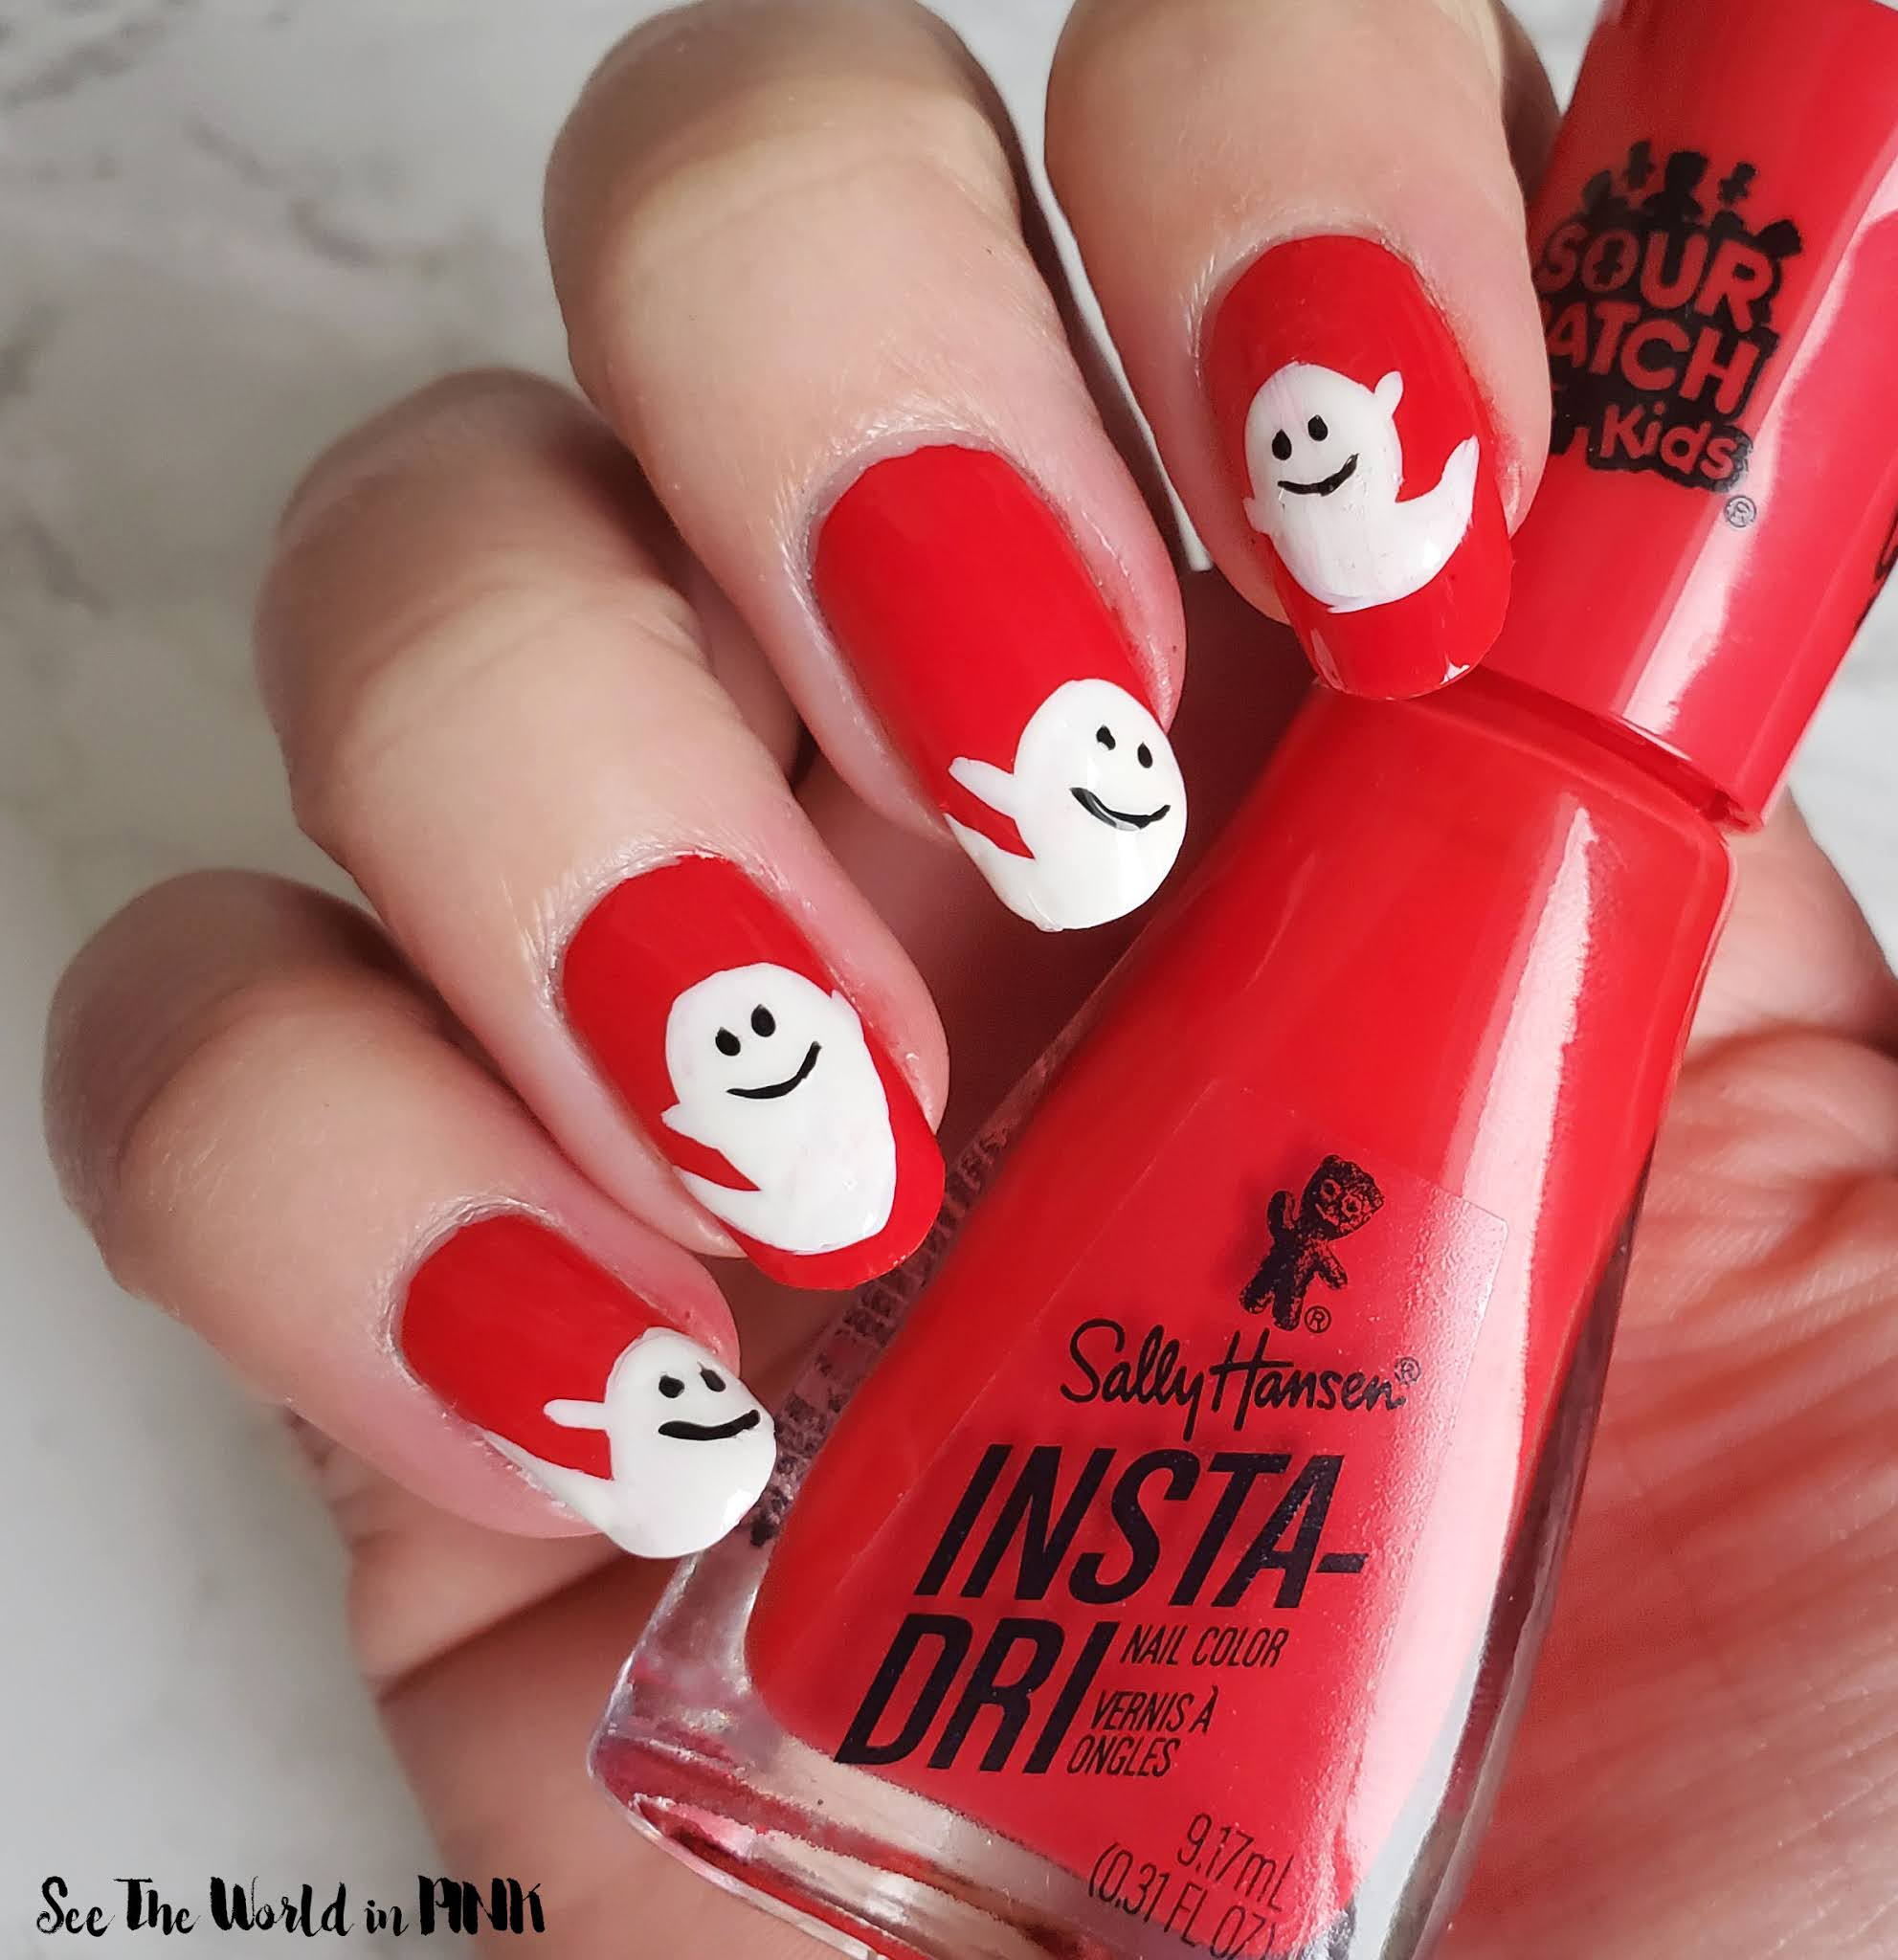 Manicure Monday - Ghost Nails!